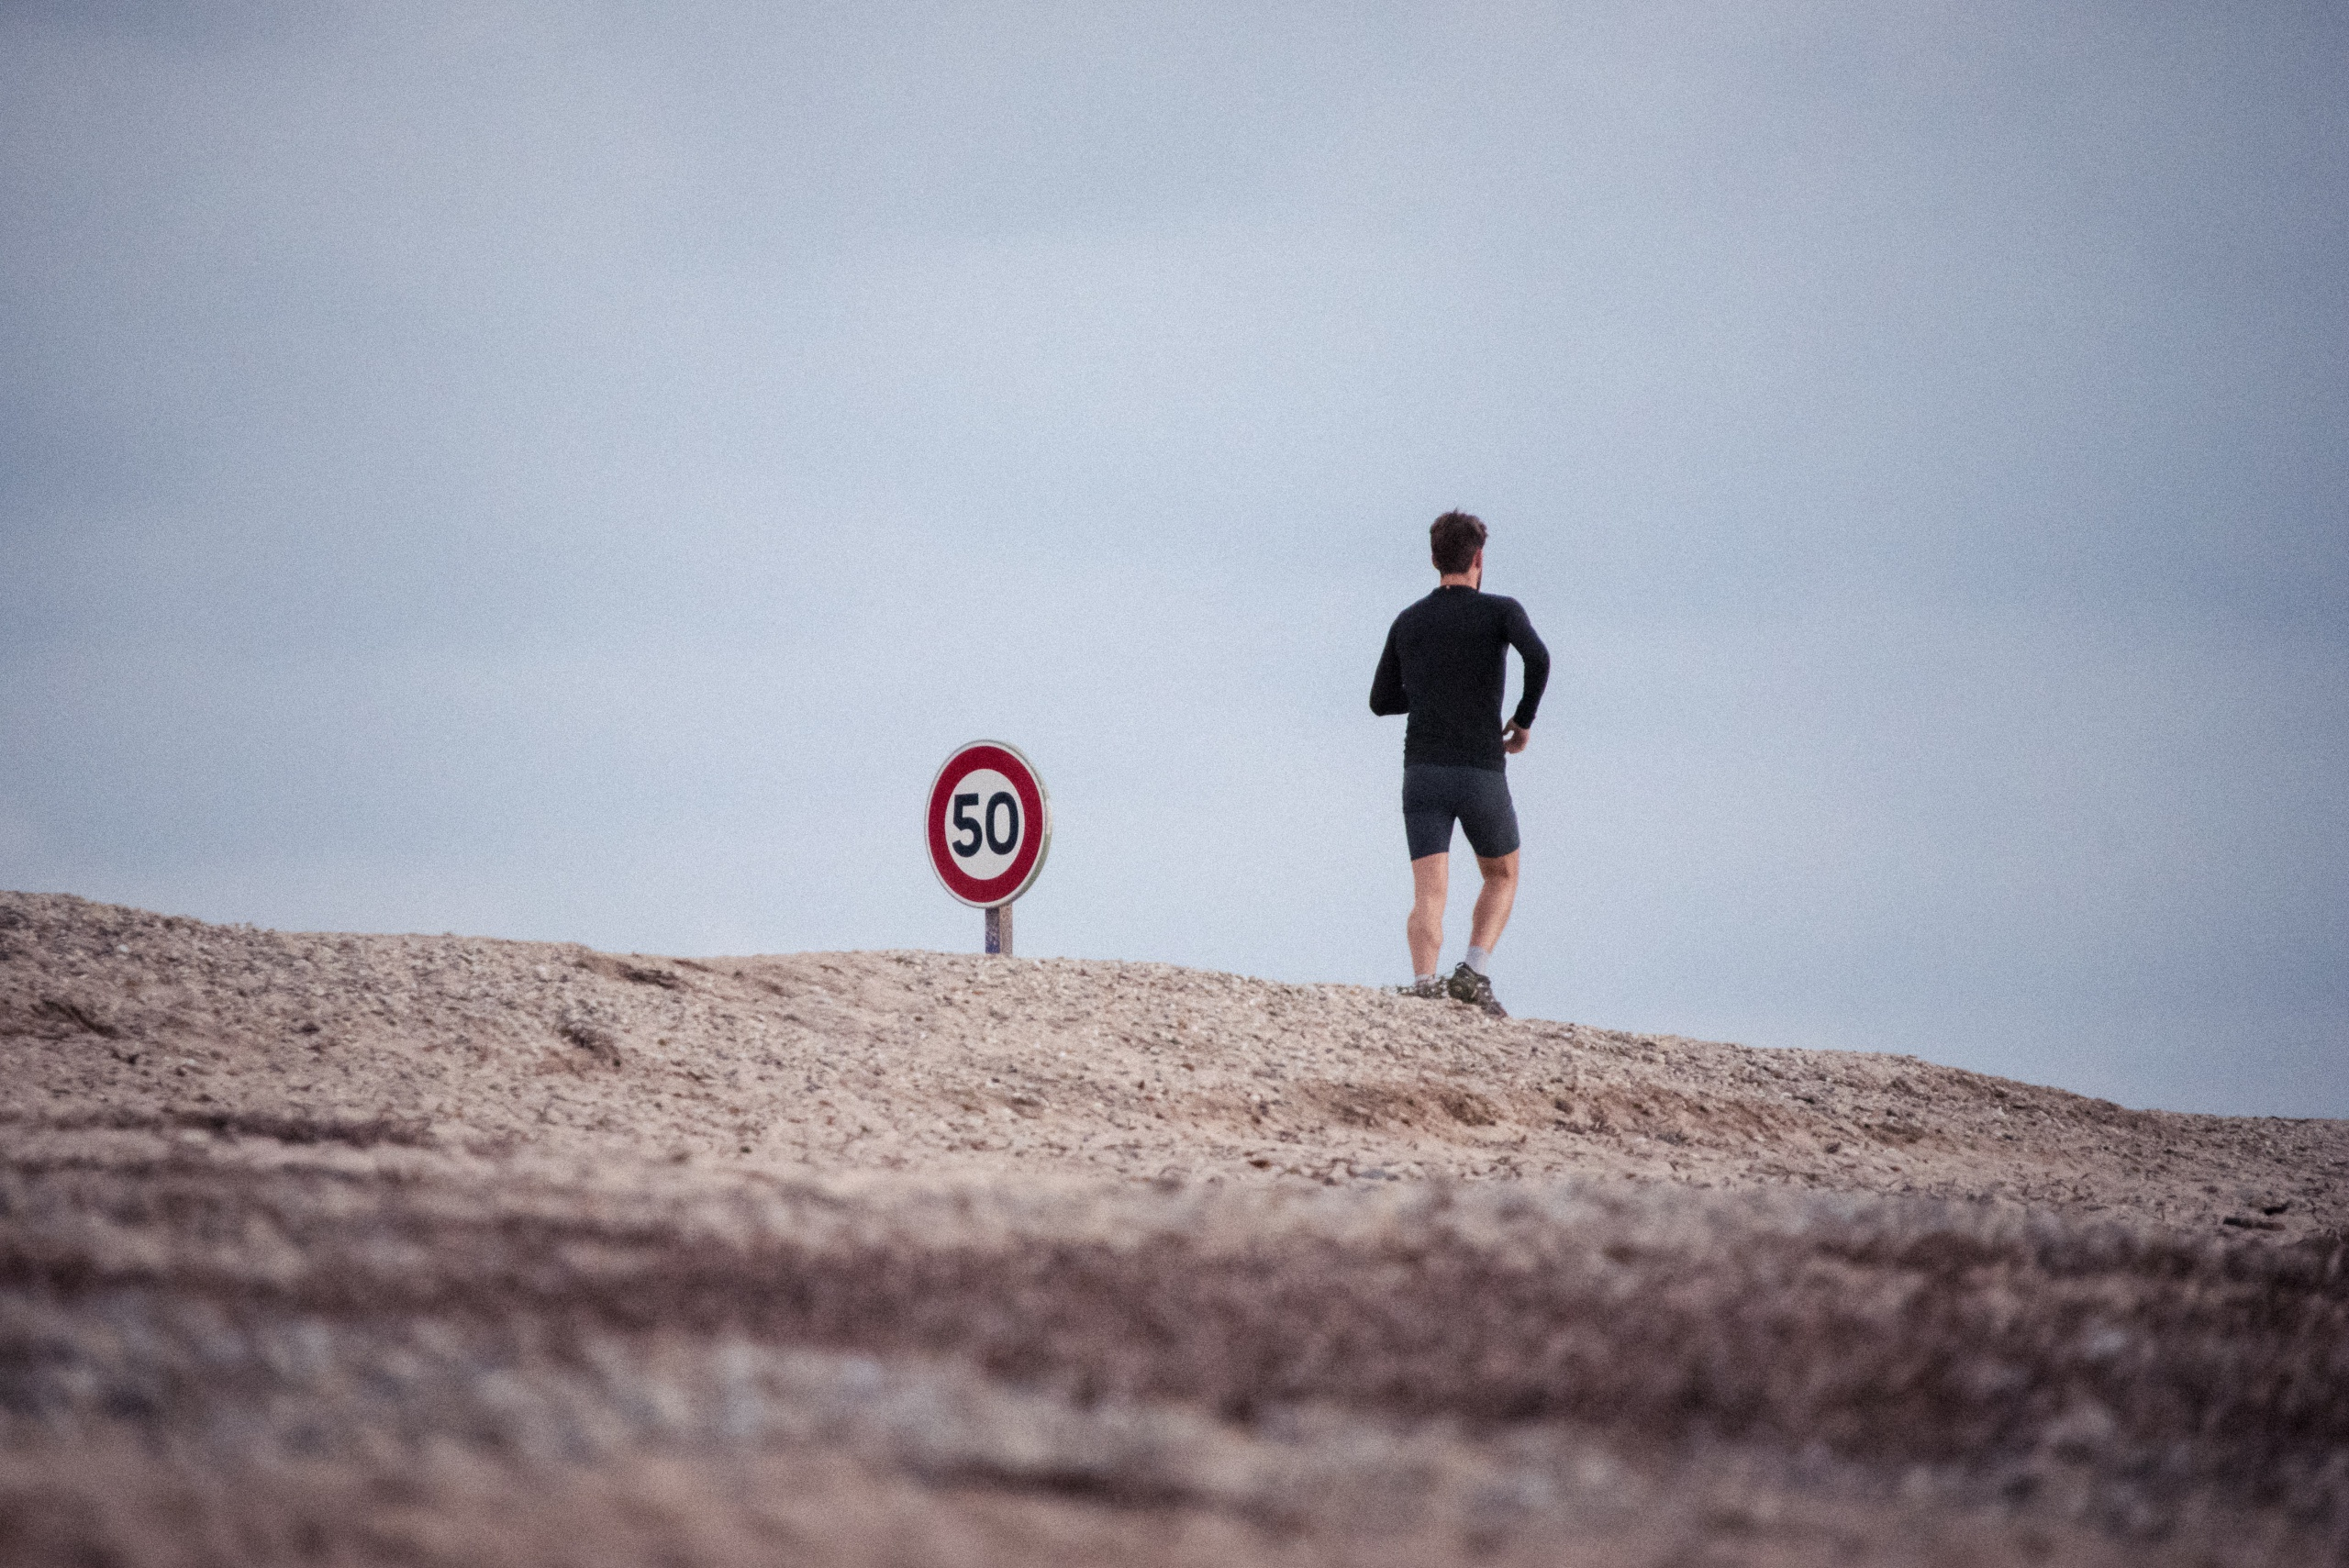 10 Things That Are Making Men Run to the Hills